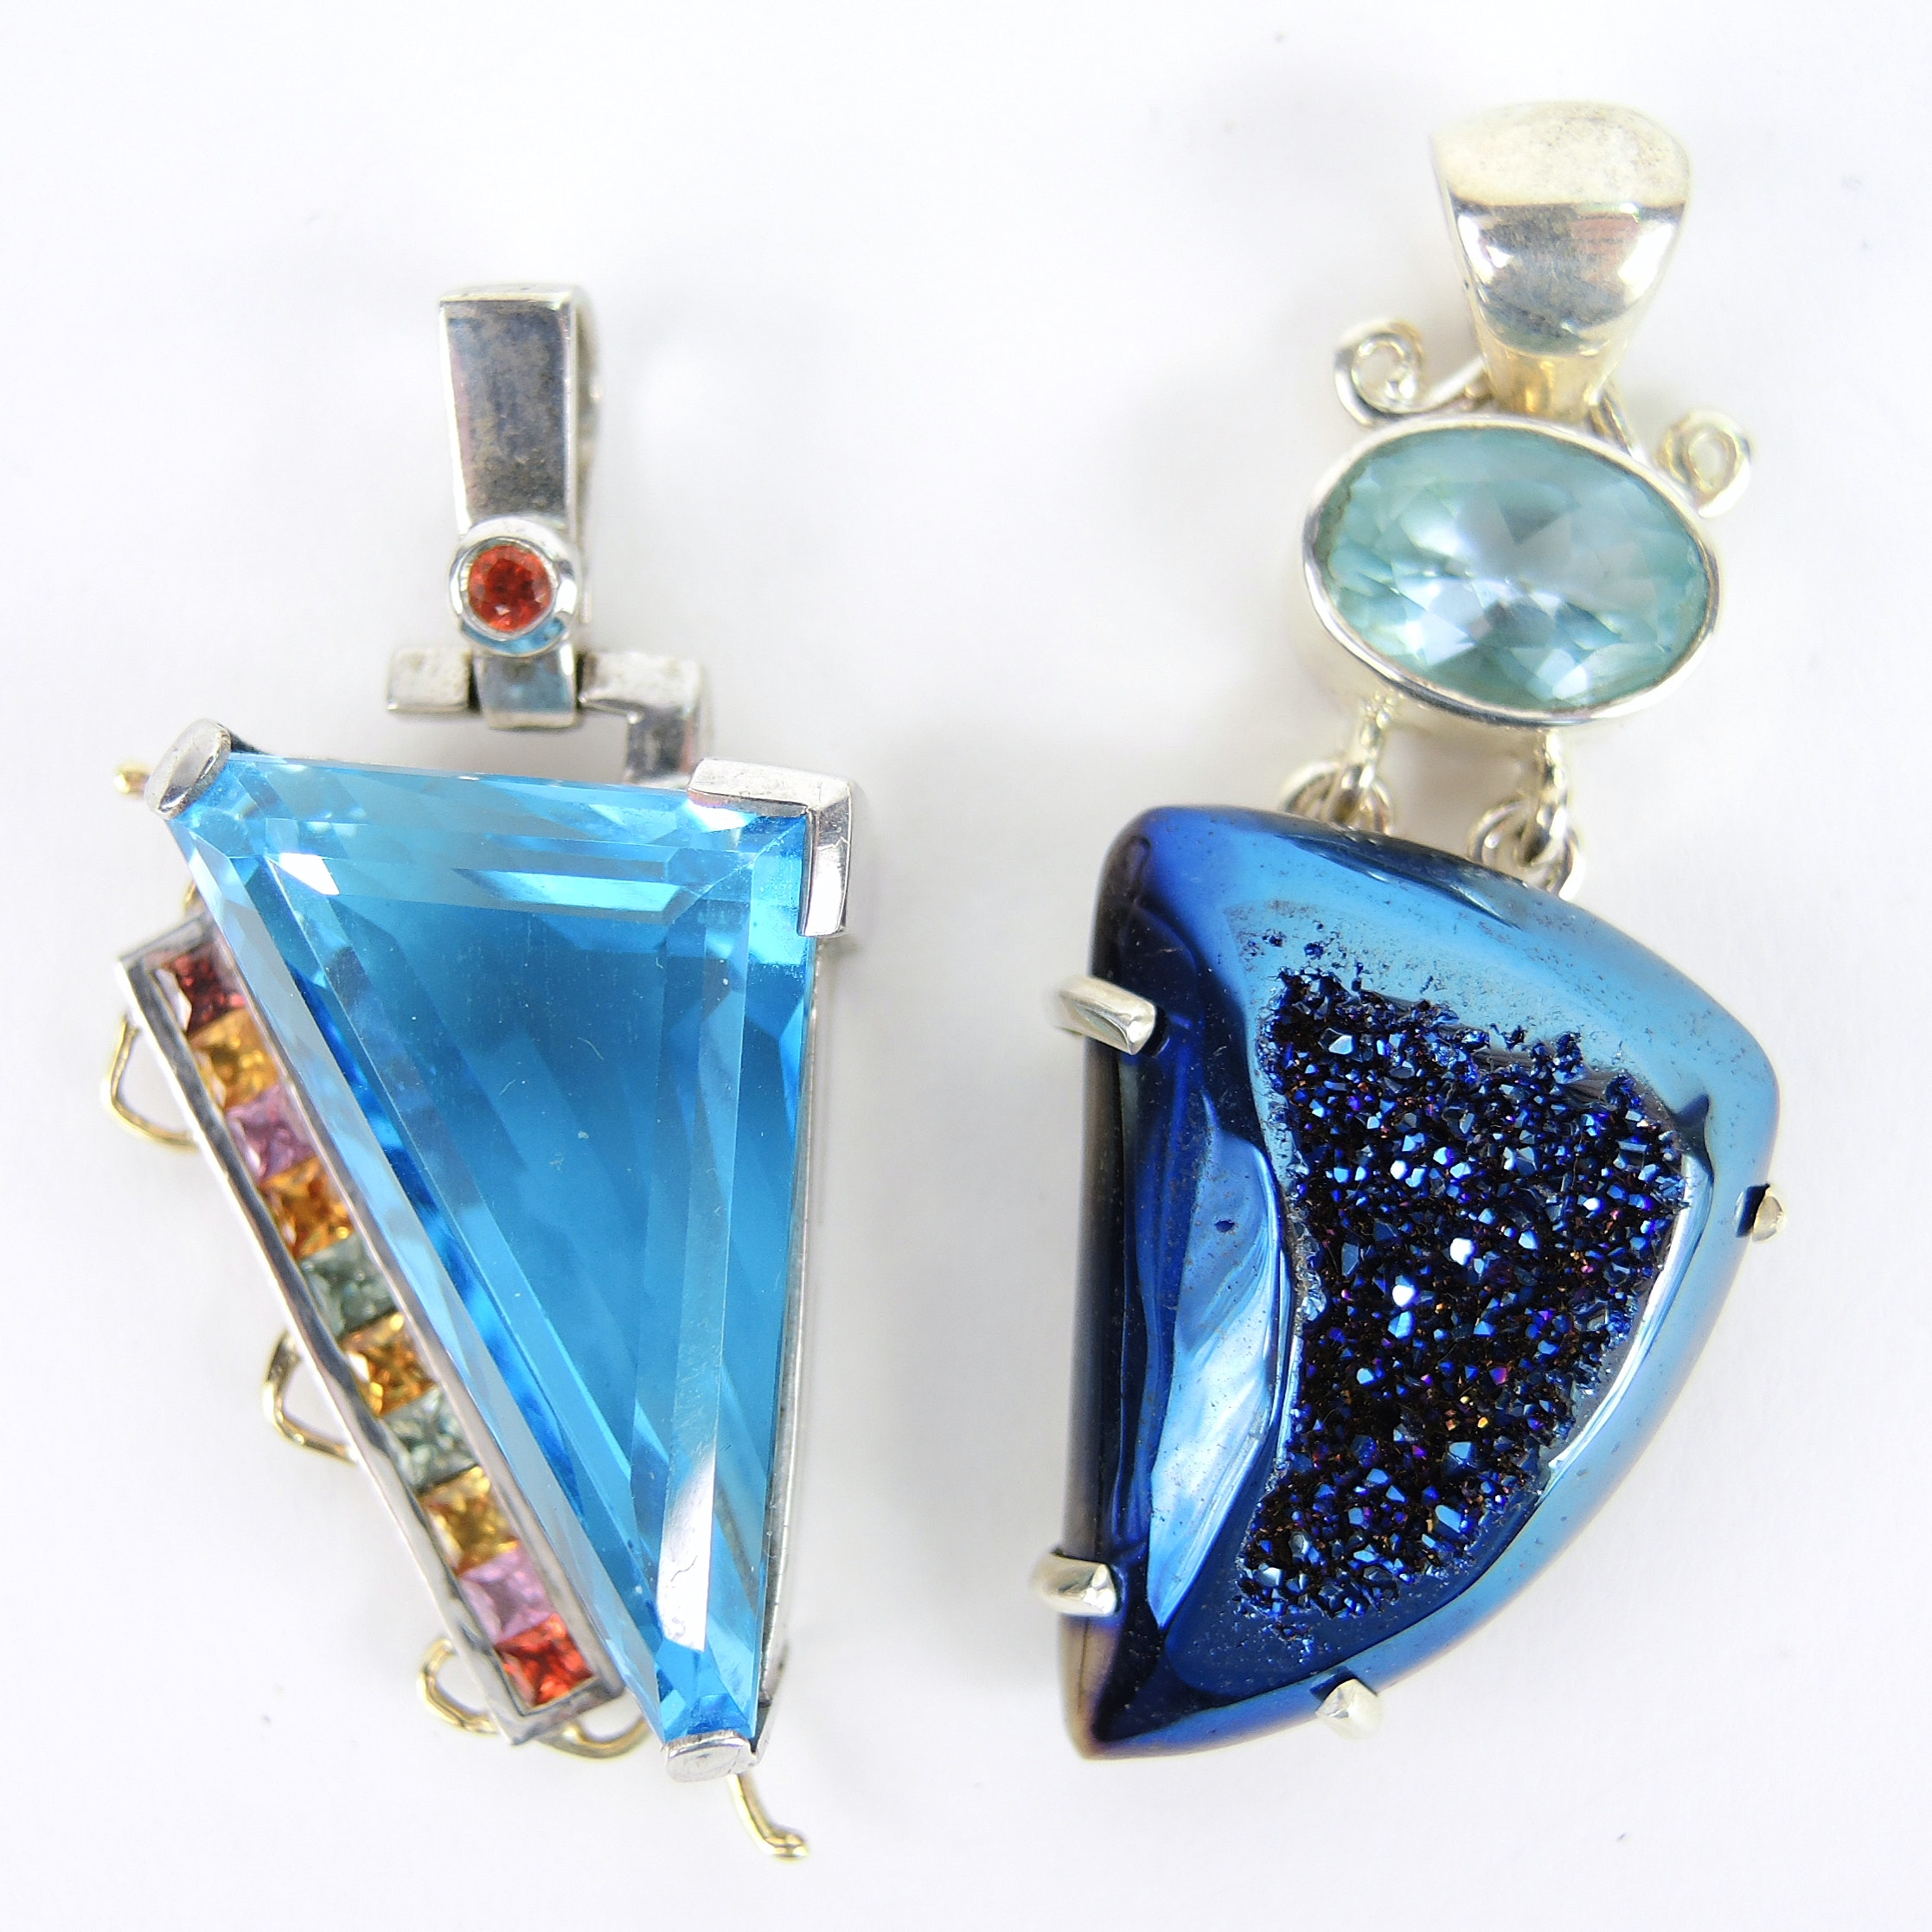 Topaz Triangular Pendants in Sterling Silver